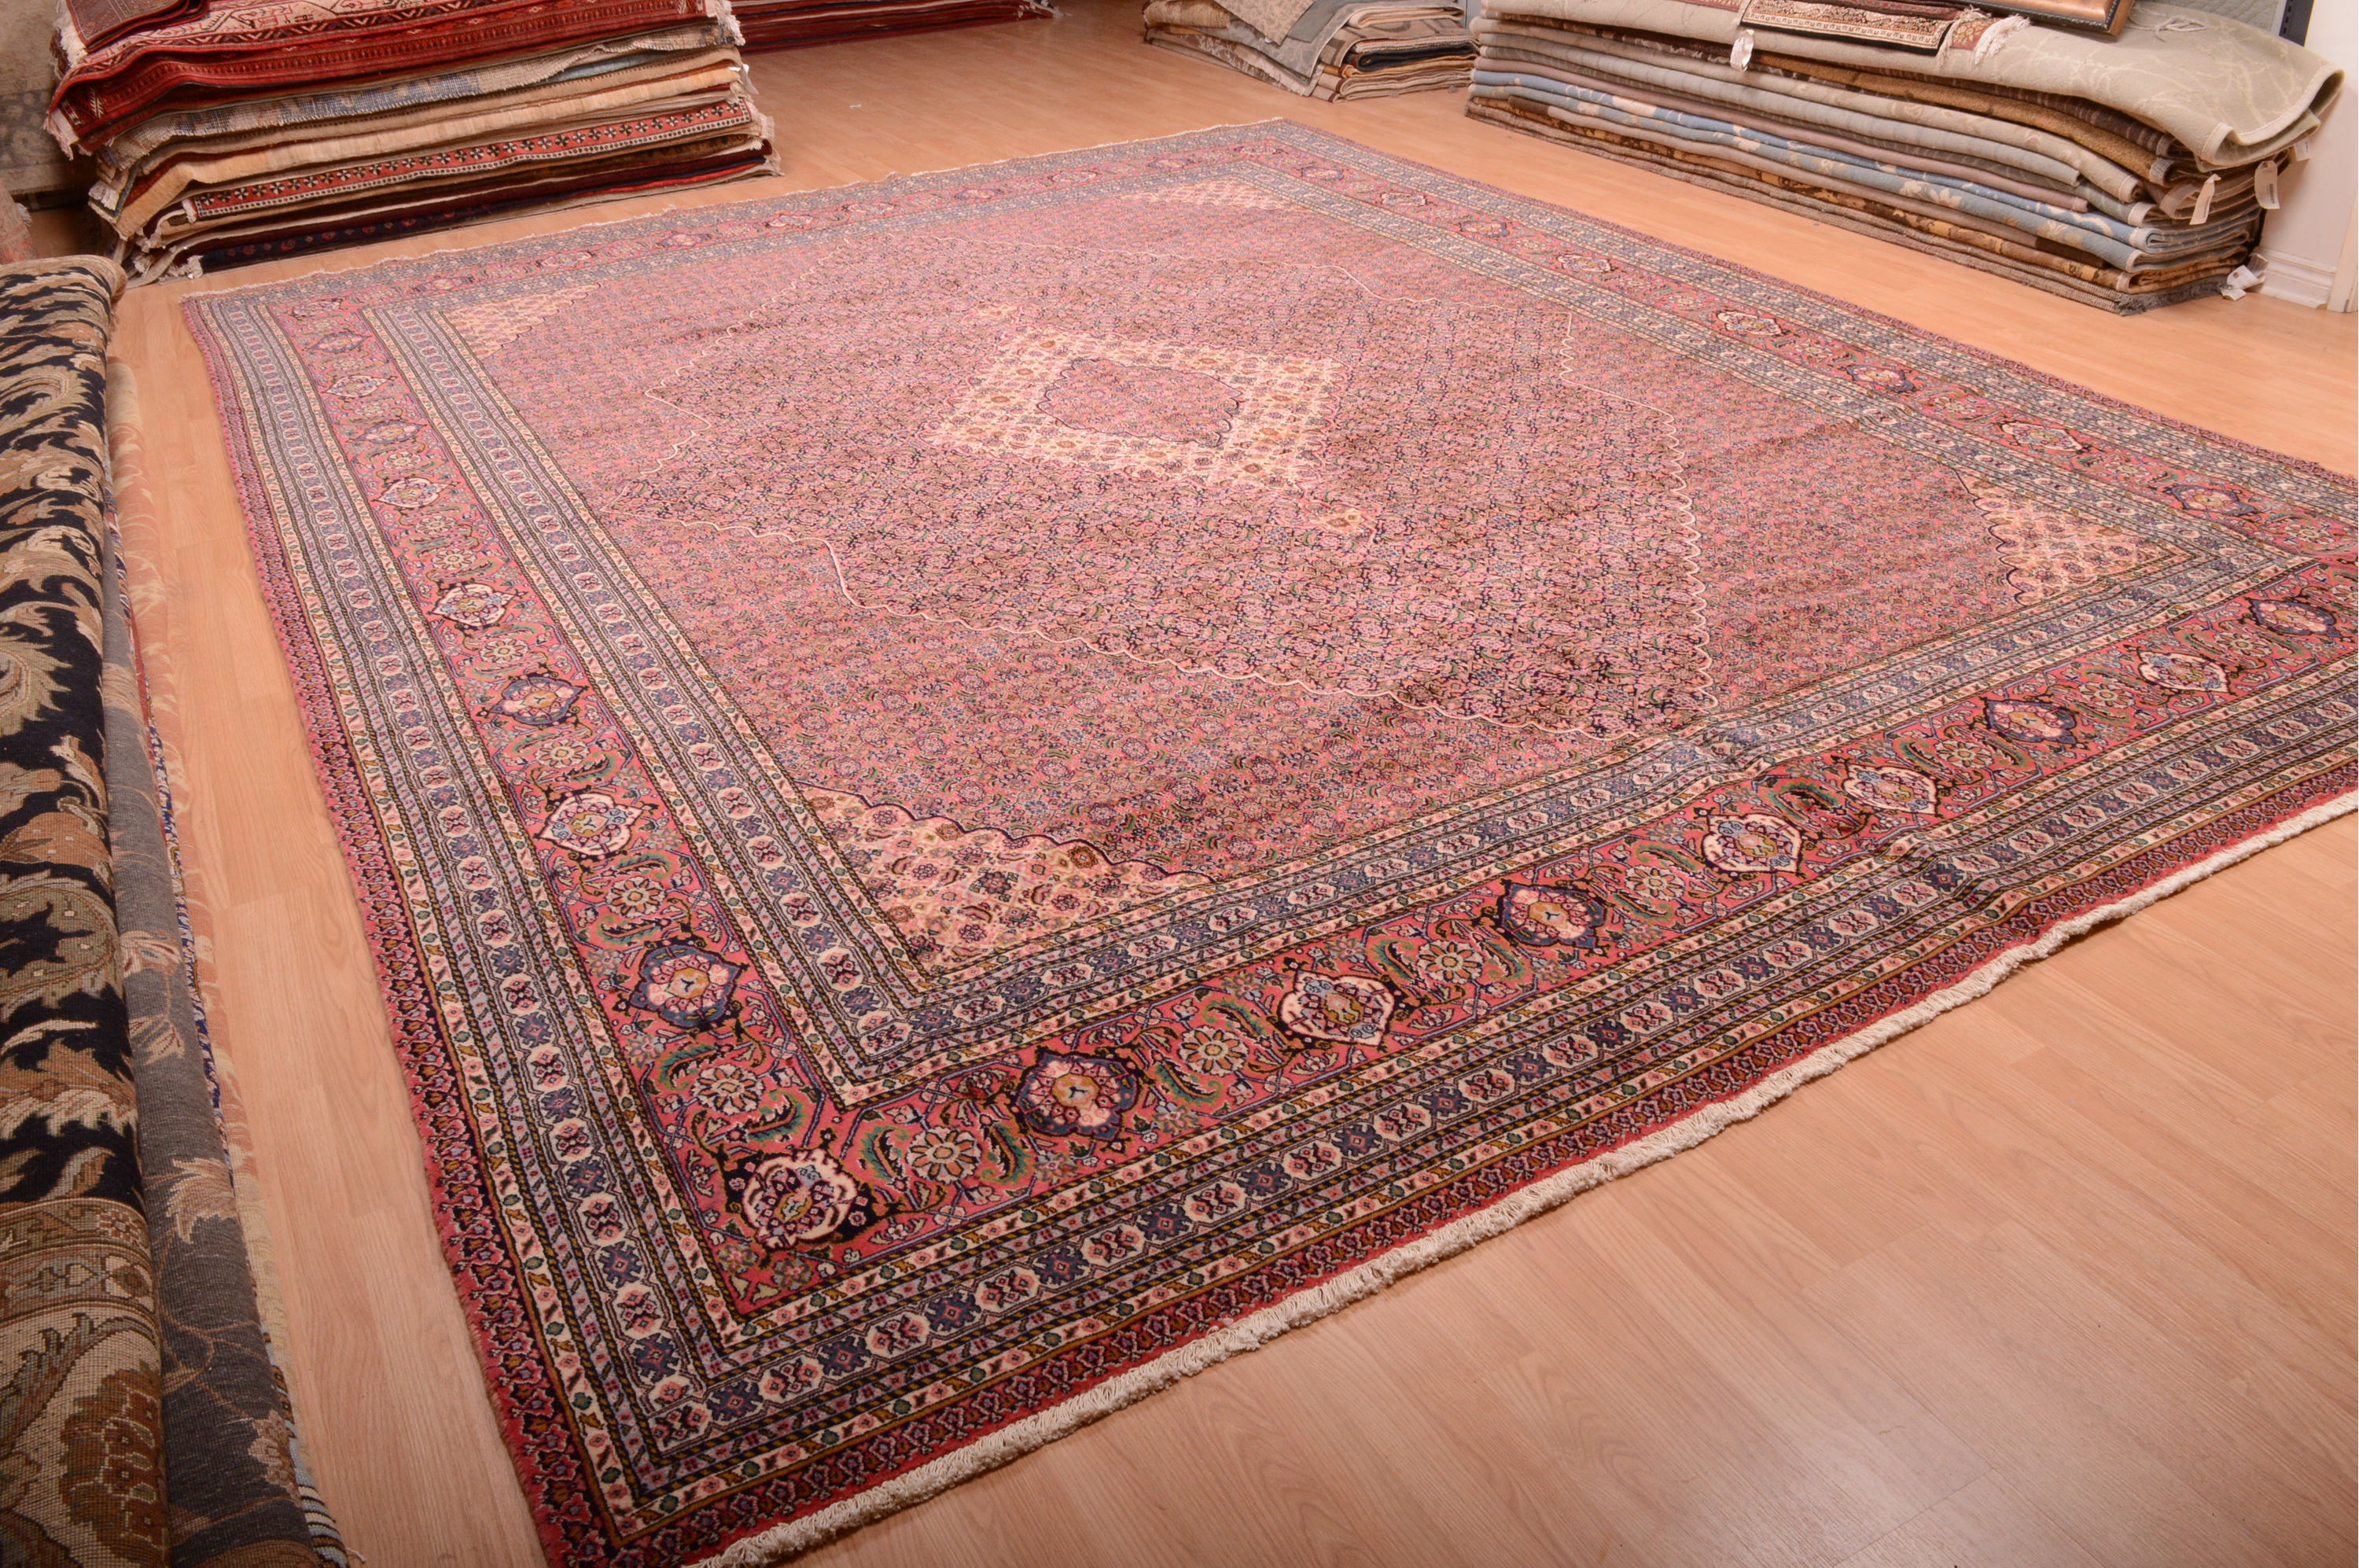 Carpet U2 Sarab Red Hand Knotted 11 10